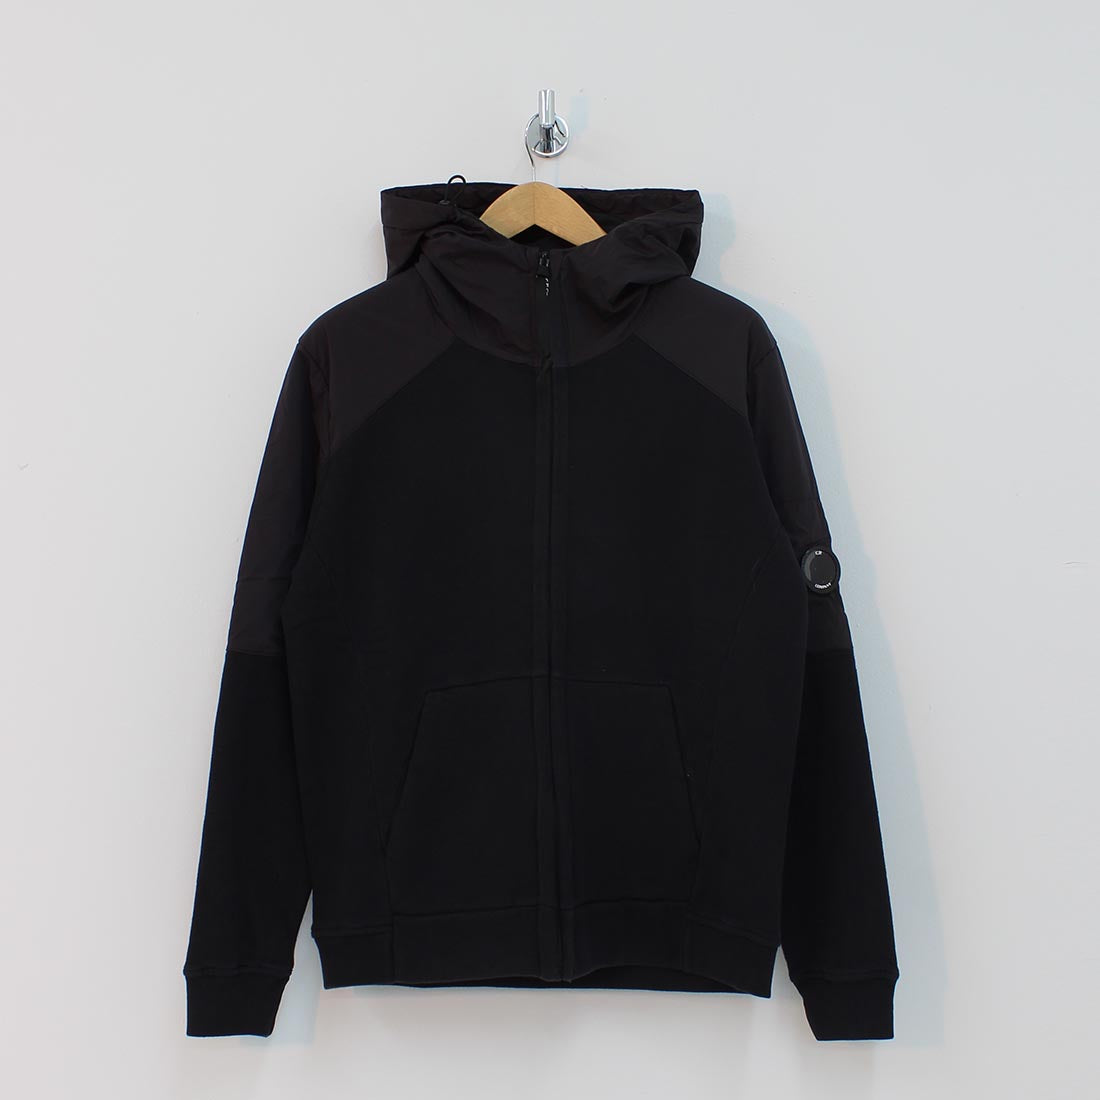 CP Company Arm Lens Hooded Sweat Shirt Black